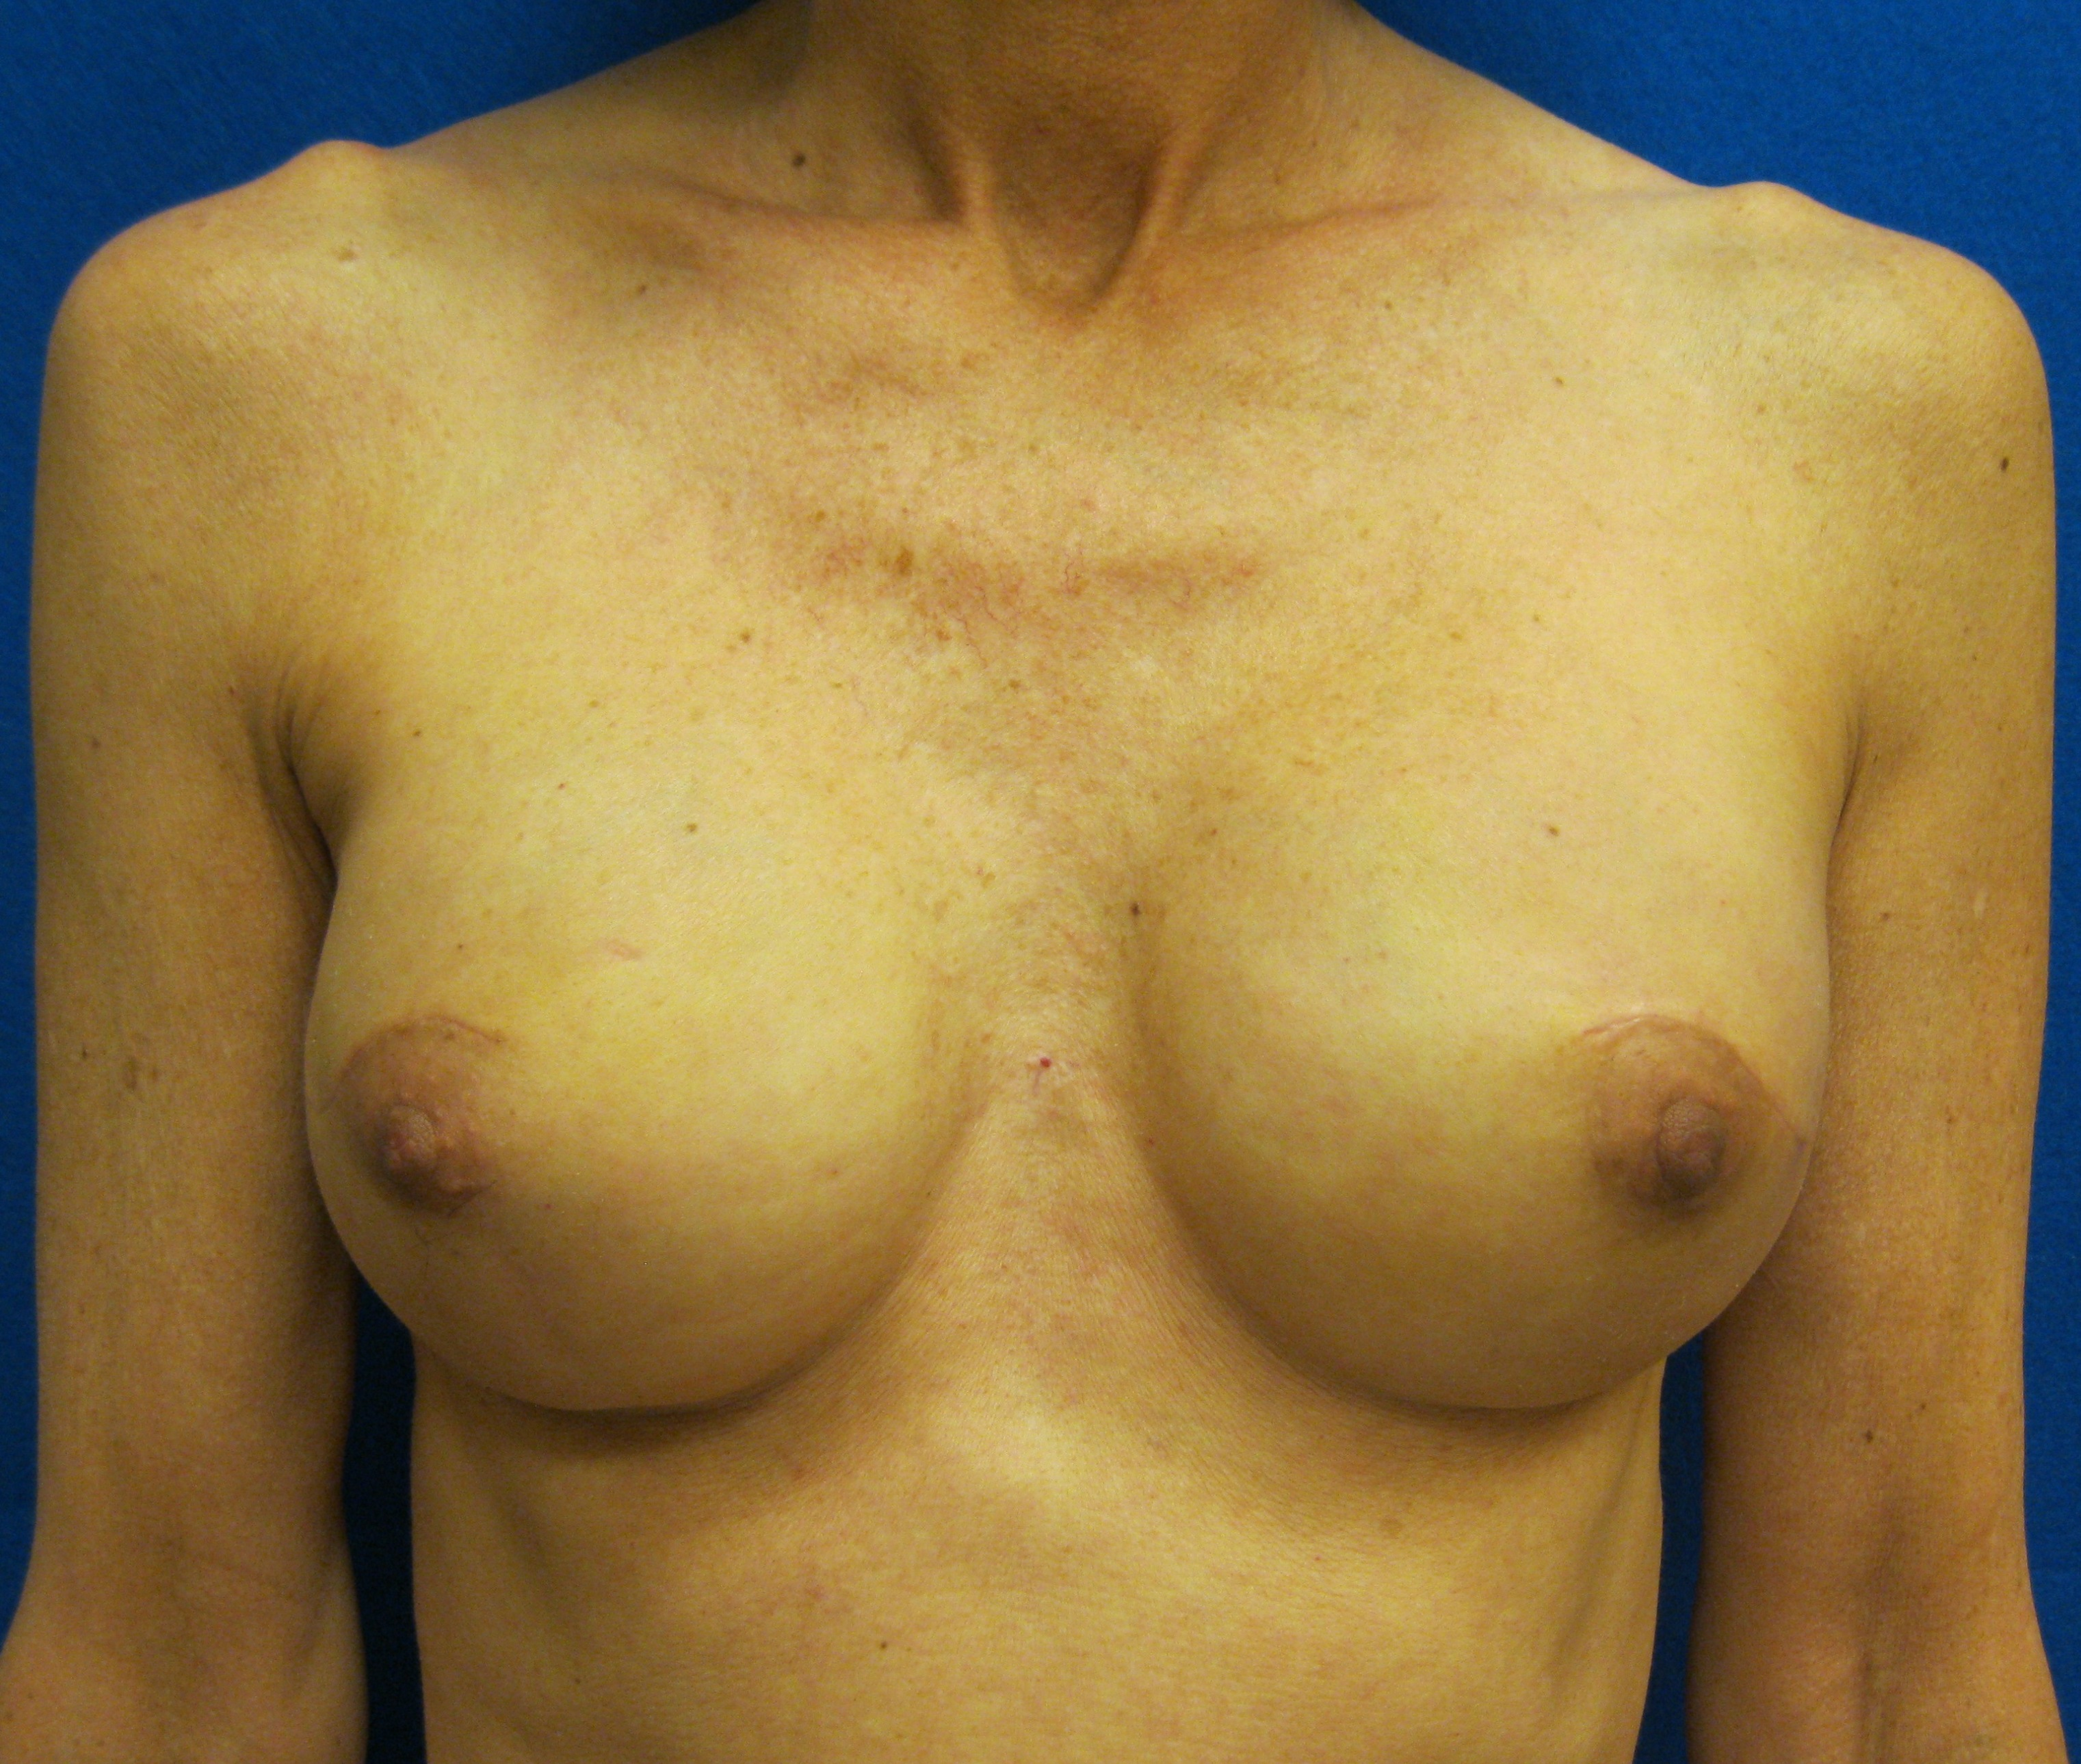 nipple sparing double mastectomy reconstruction with implants fairfield westport connecticut new york jandali plastic surgery